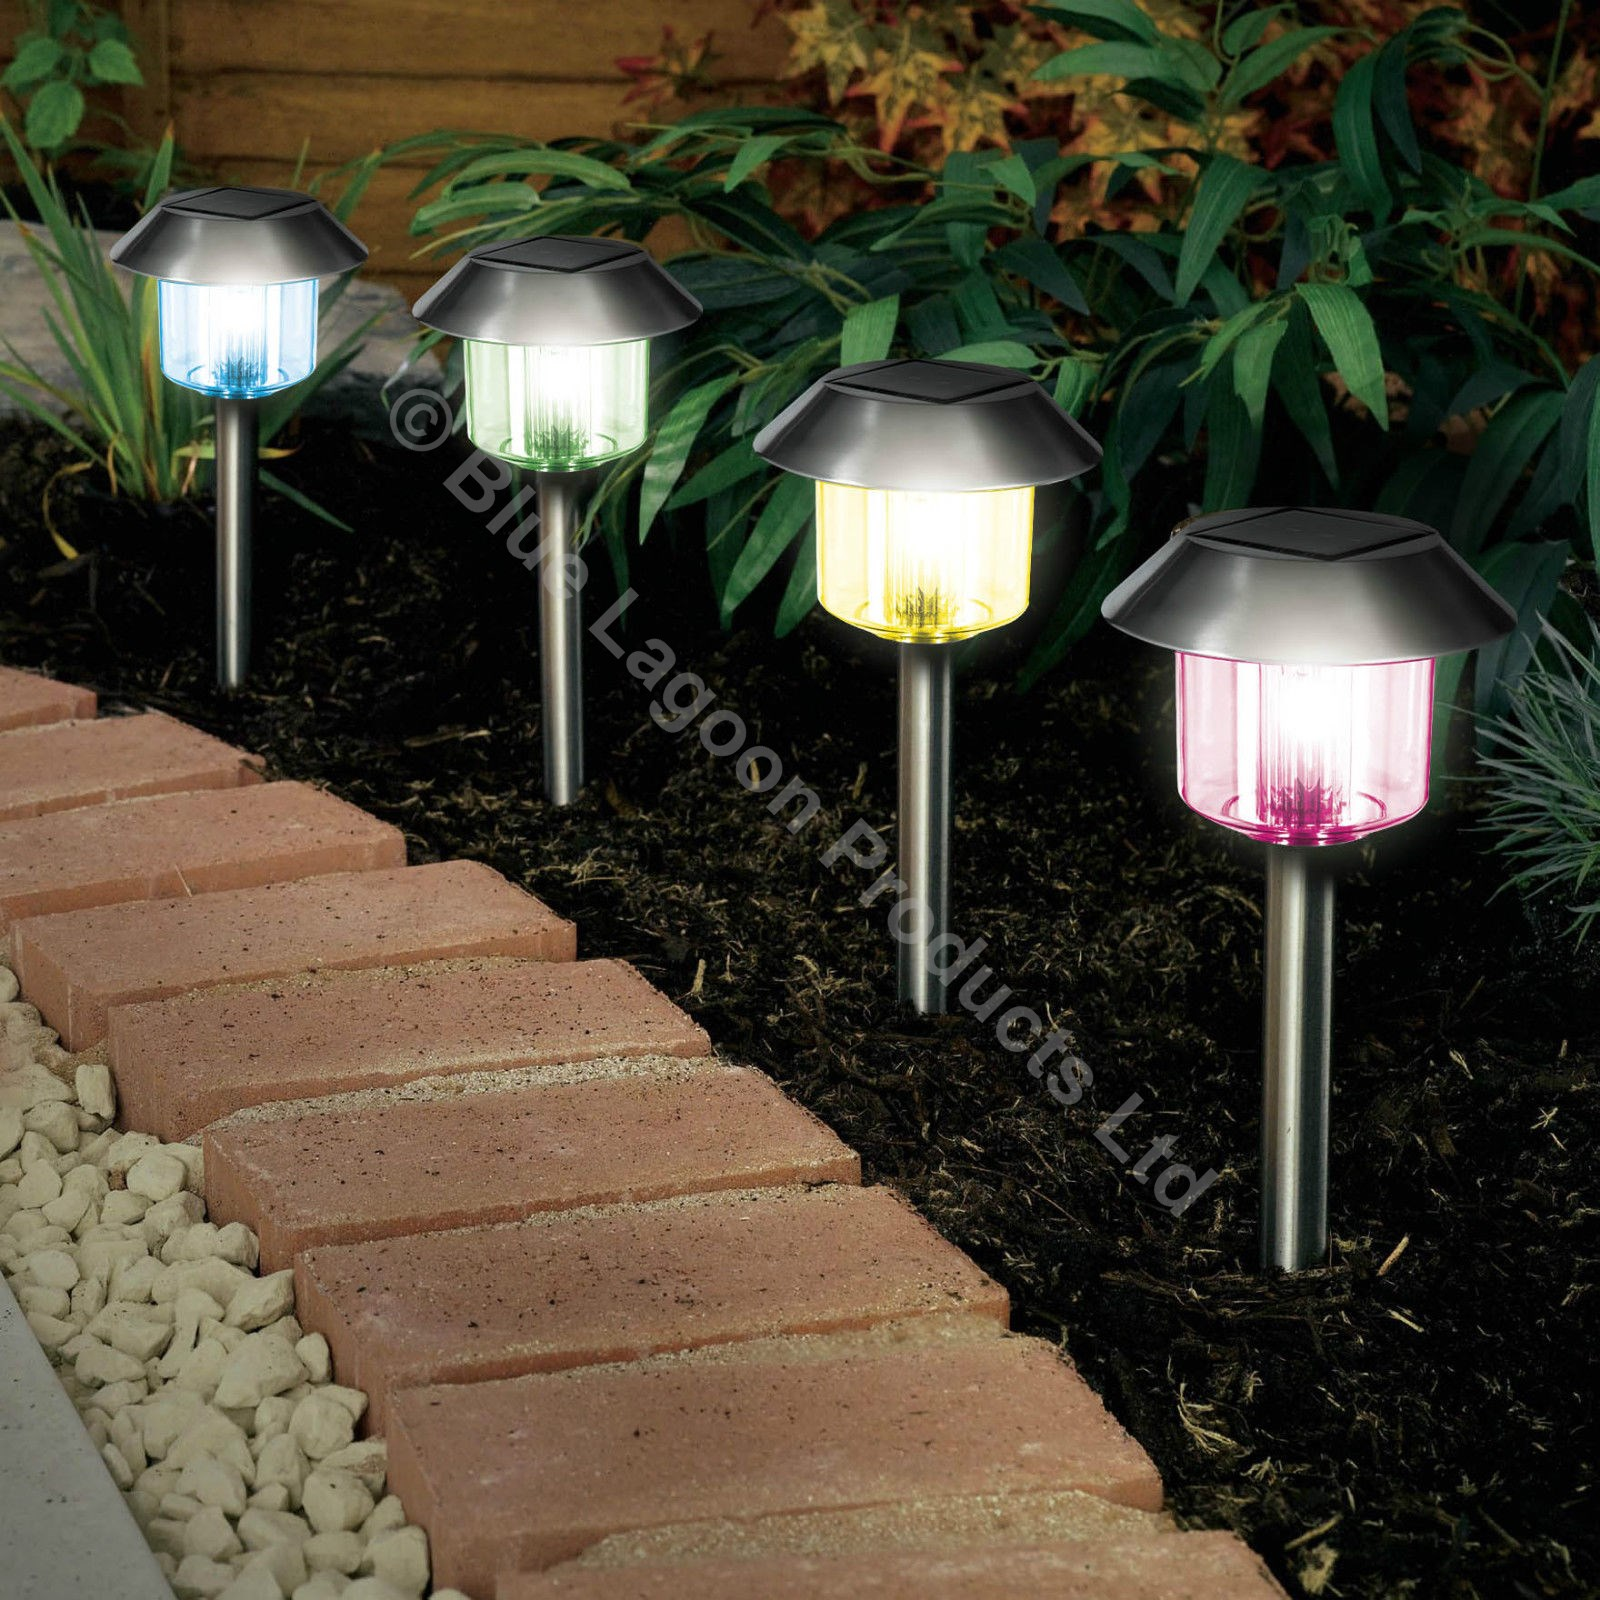 panels green decor solar home outdoor pole lights decorative light for